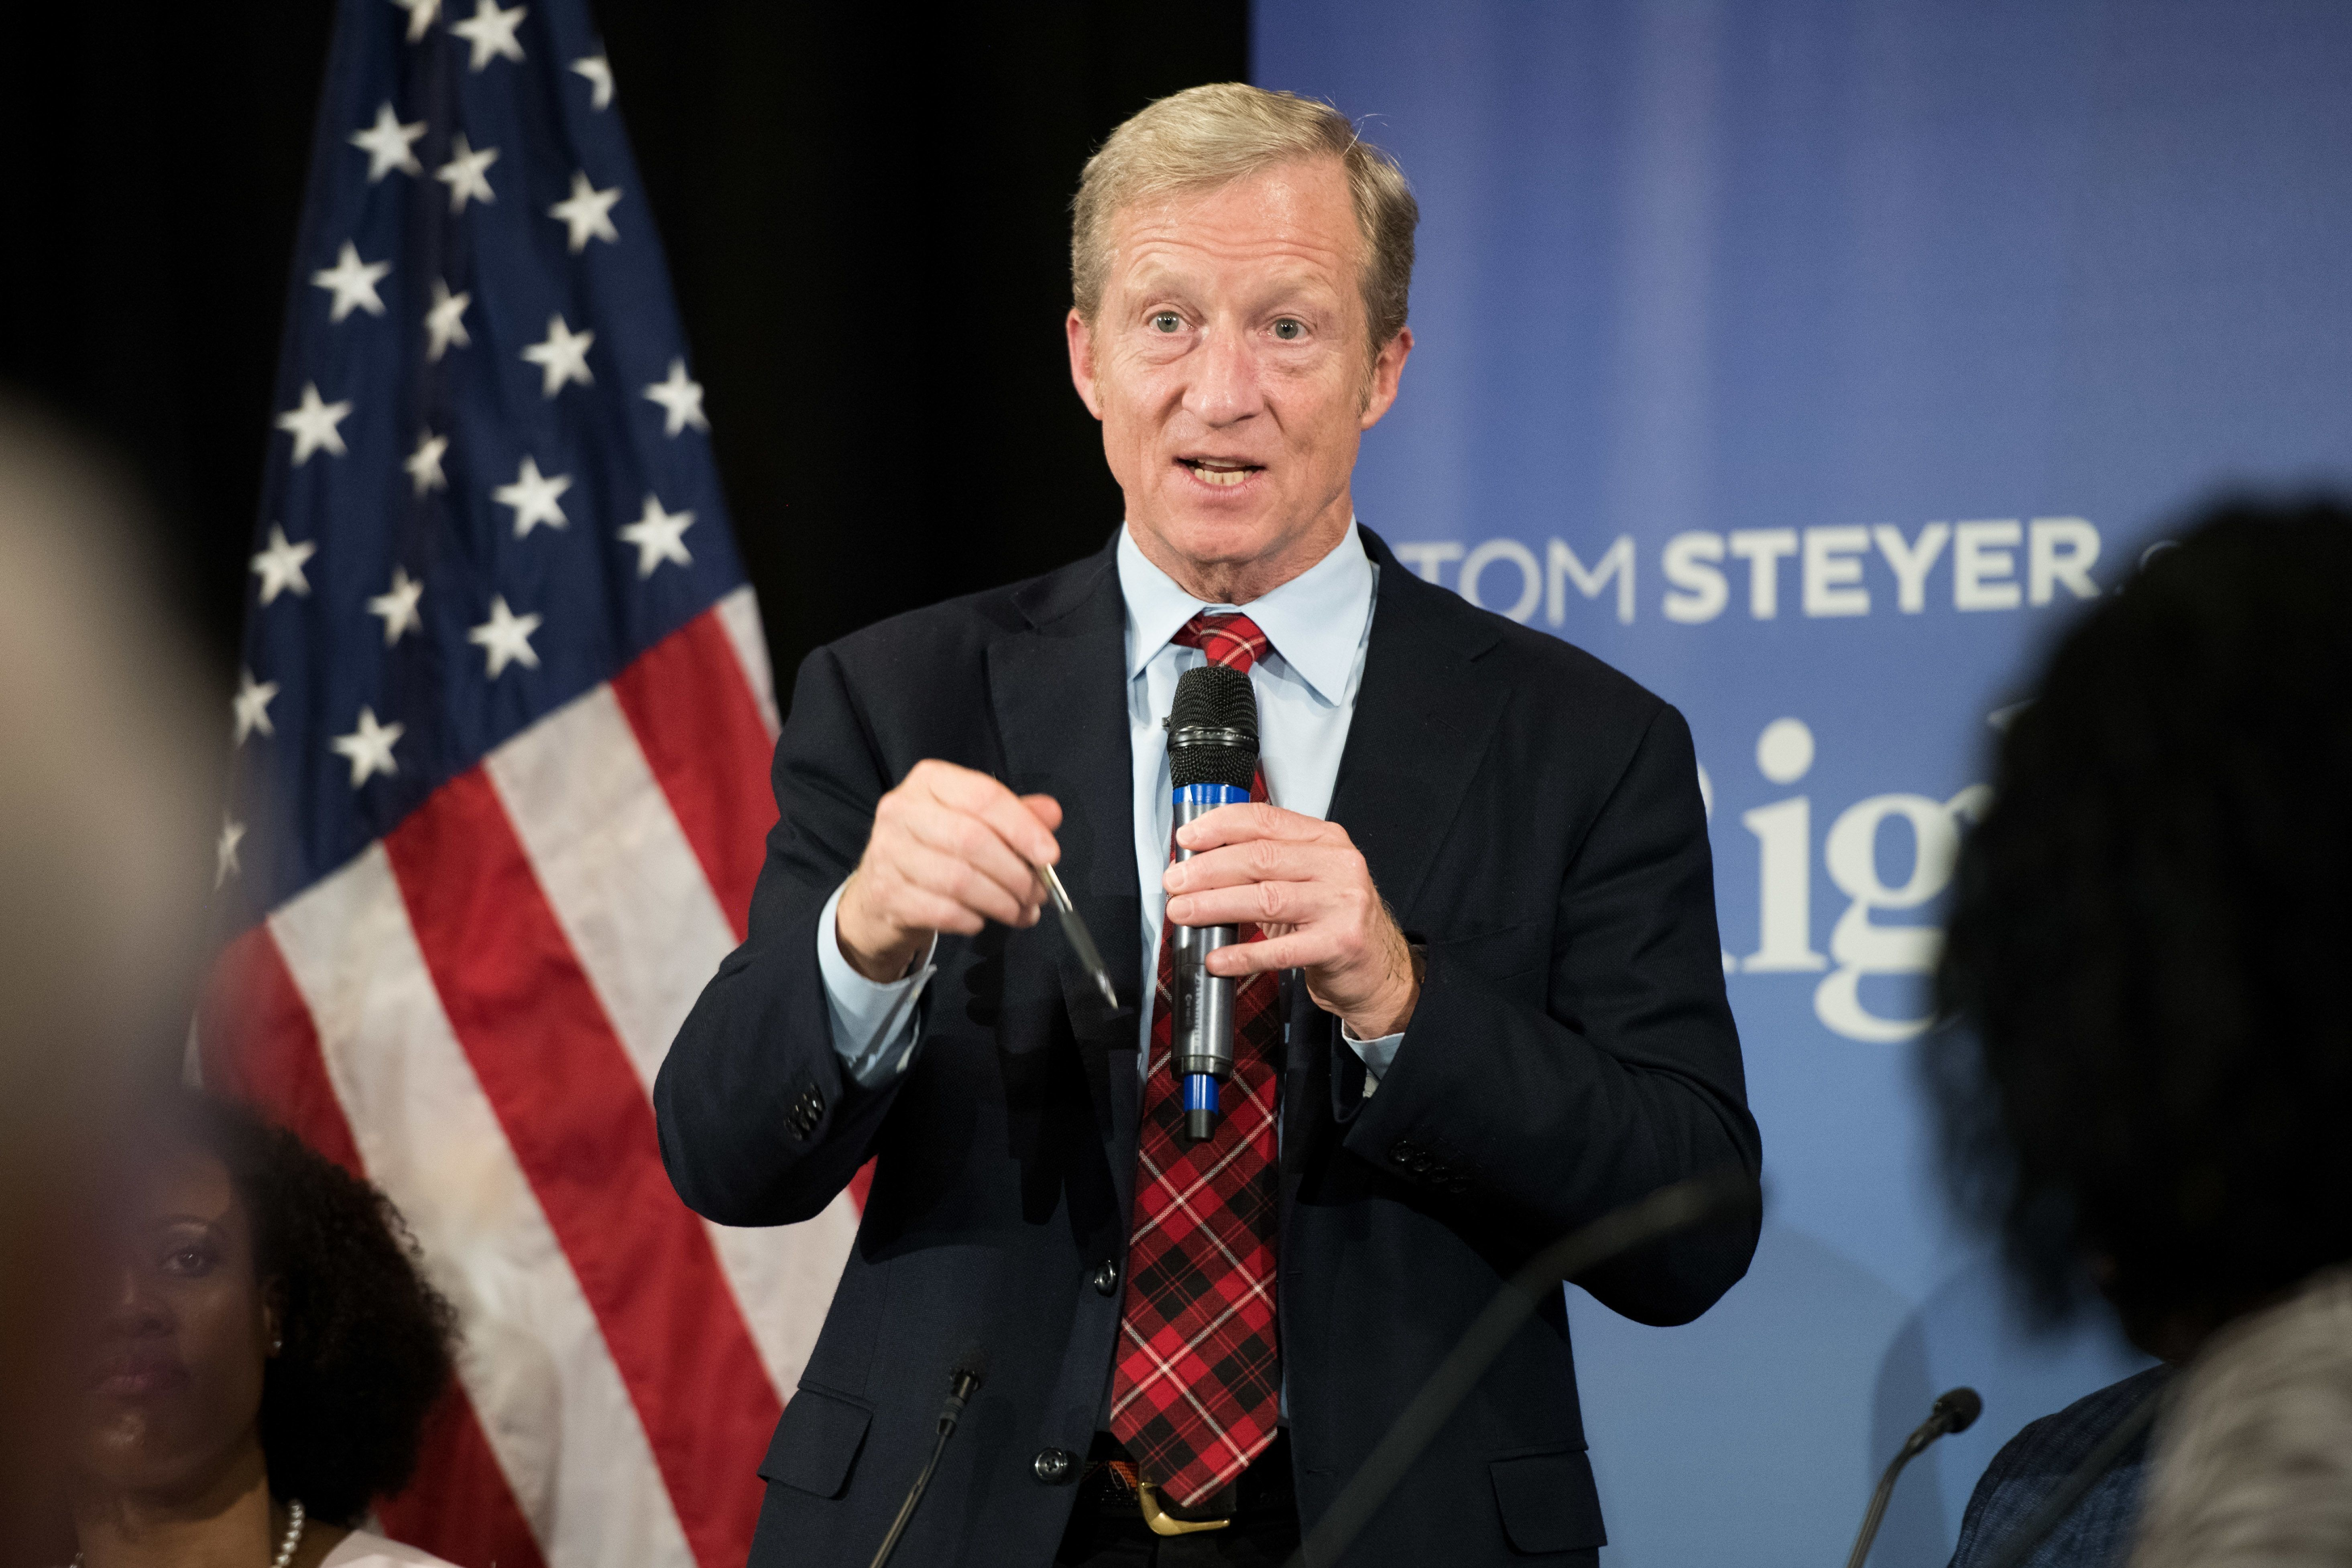 Steyer is part of a large list of potential candidates for the Democratic Party's nomination in 2020. The tour could be a make-or-break stretch for his presidential ambitions.